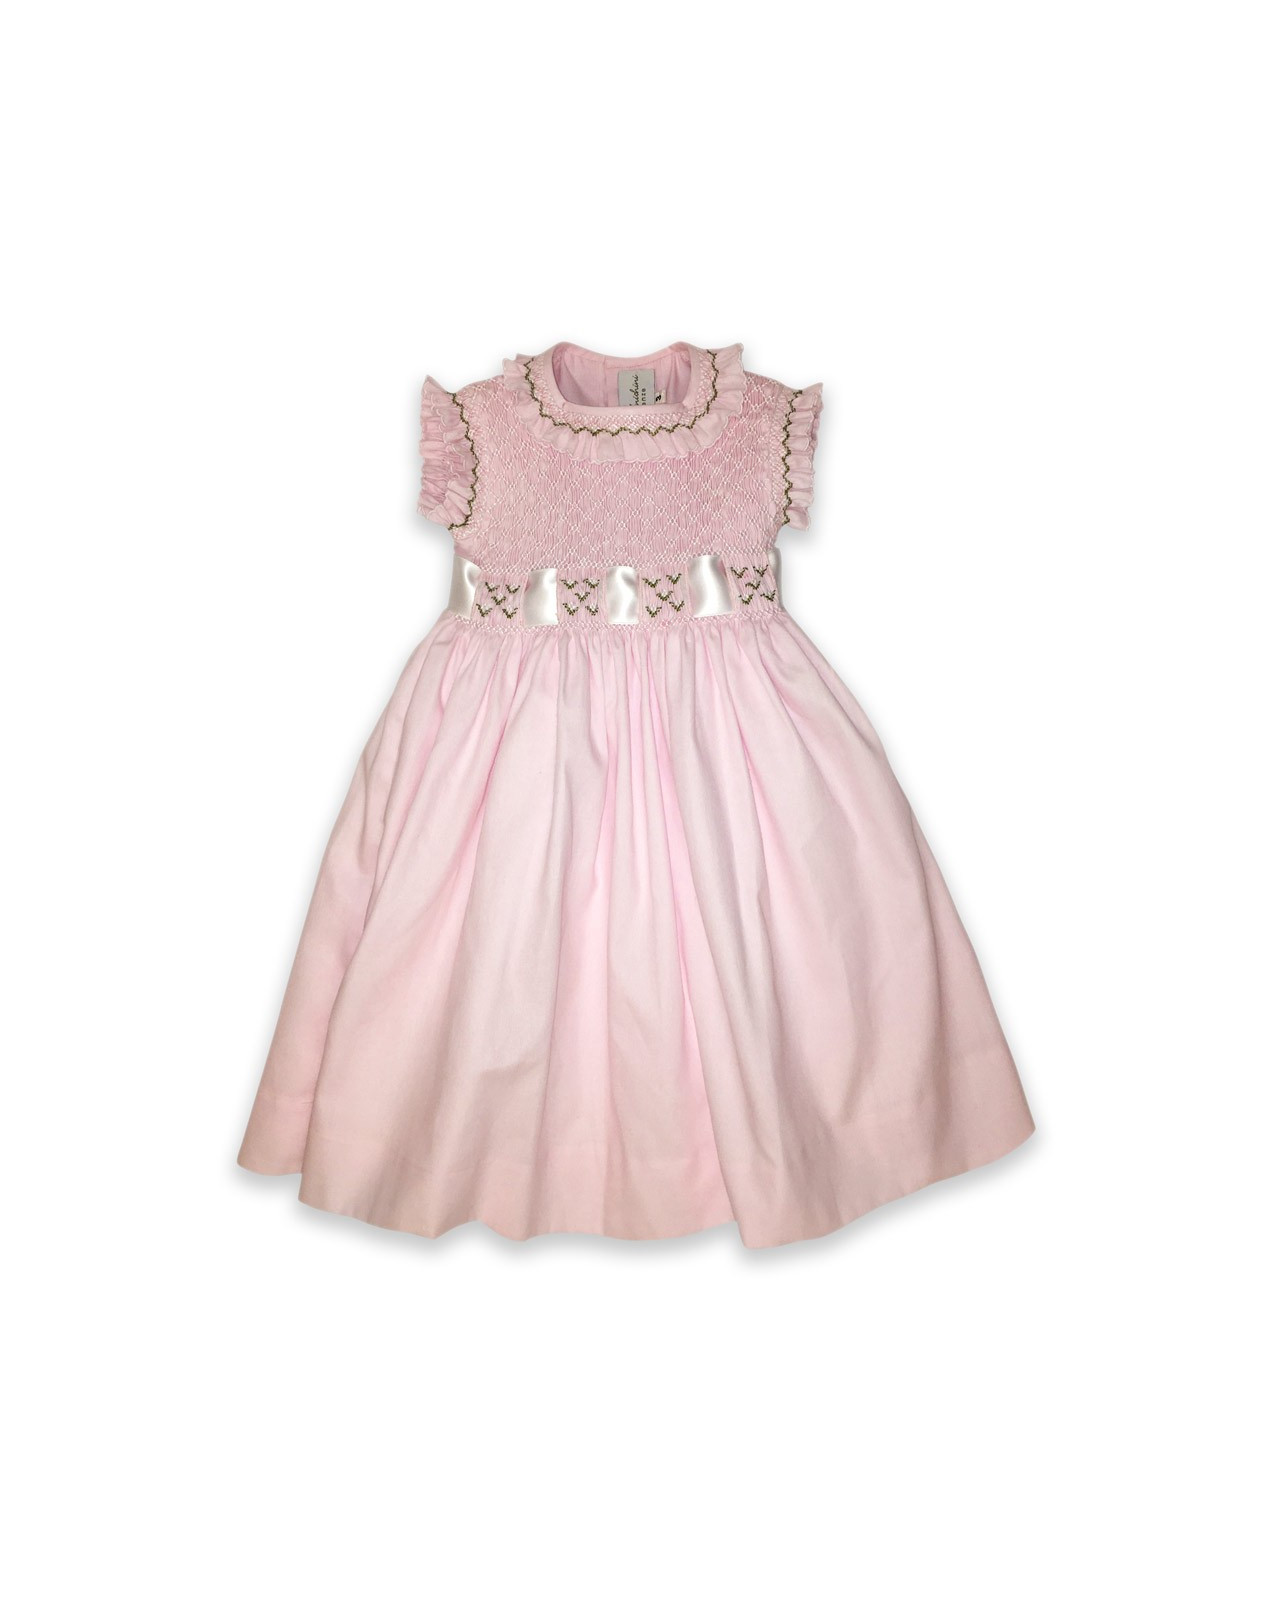 Clarabella smocked dress for girls